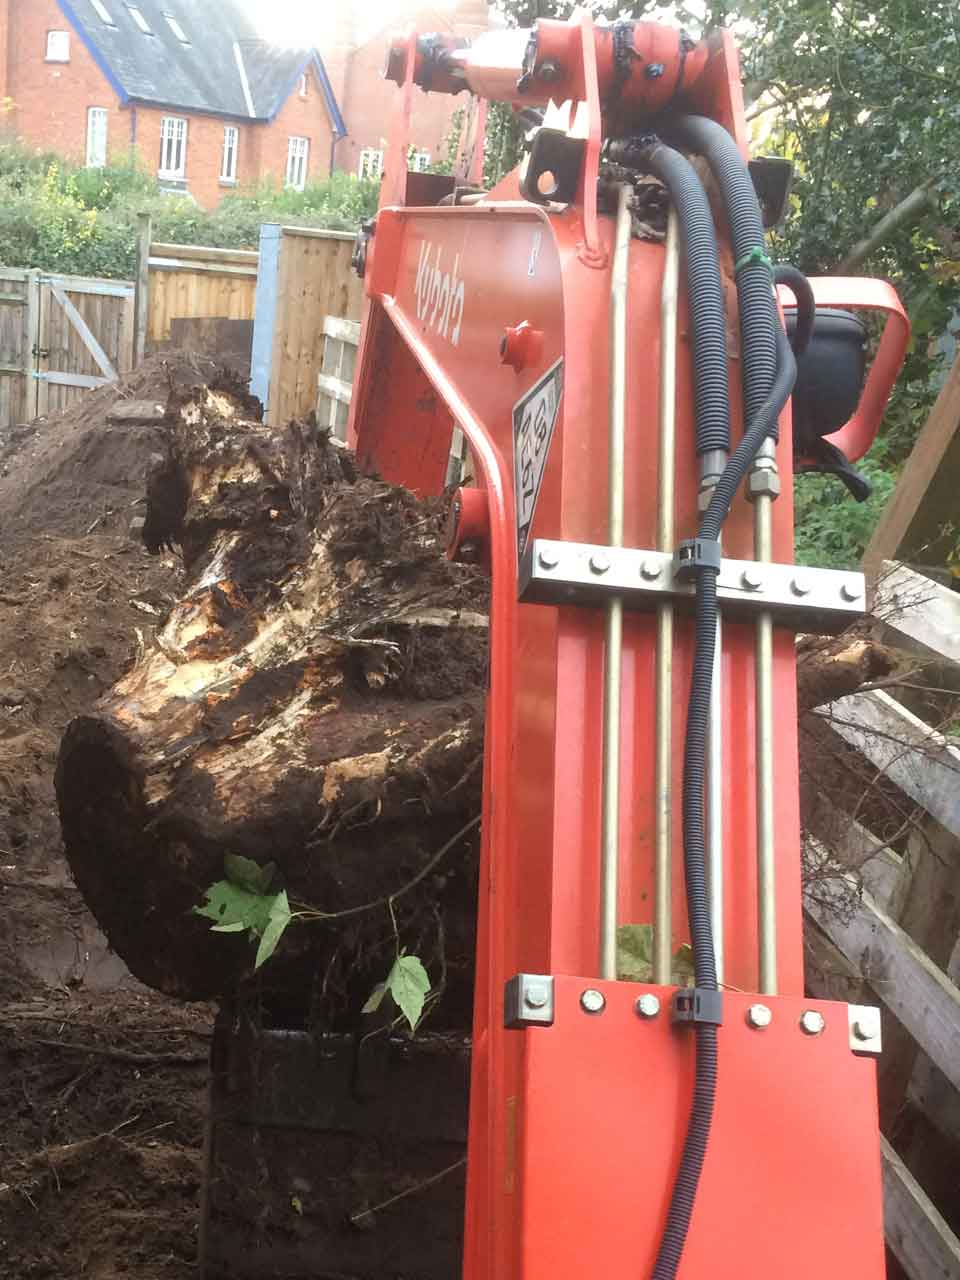 Image of tree stump removal in Wokingham, Berkshire by excavator - Tree stump removal in Wokingham, Berkshire by excavator - Digging a Tree stump out in Wokingham, Berkshire - Let The Digger Do It!